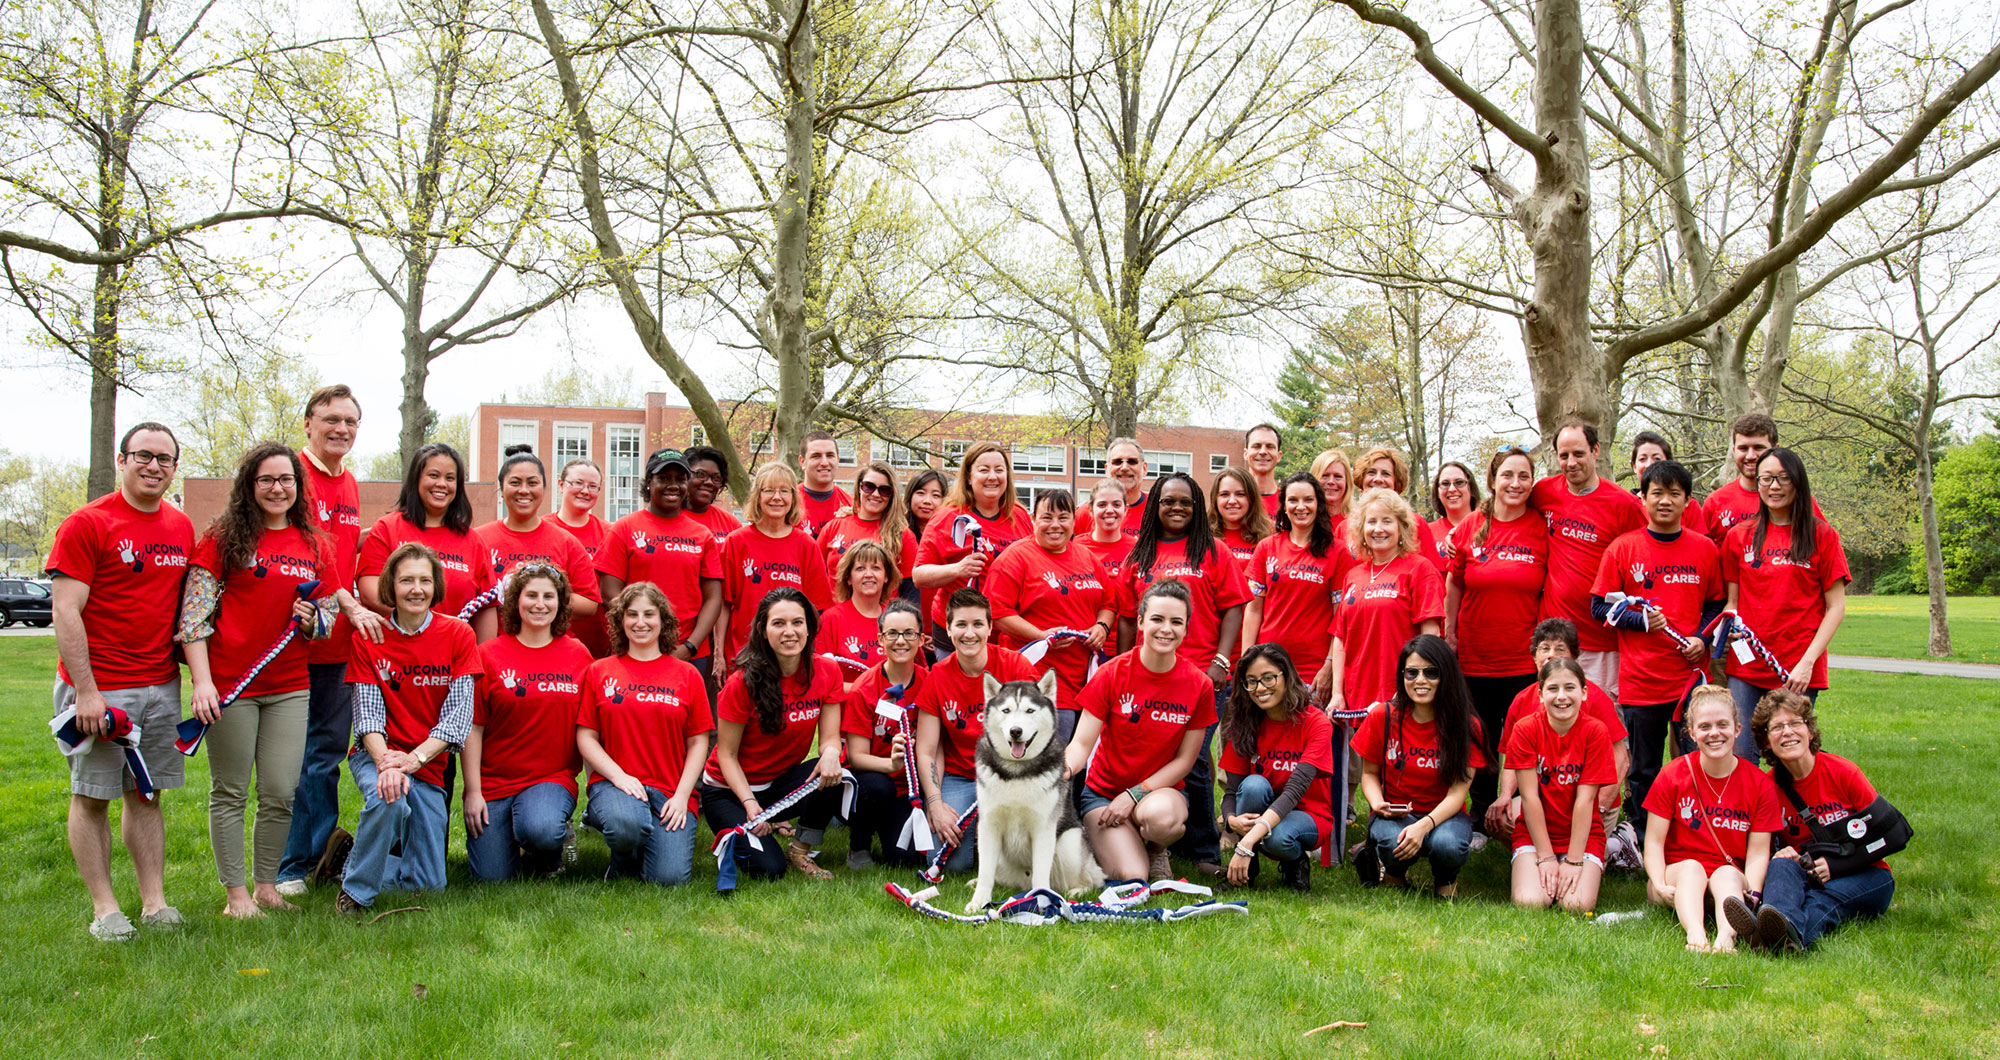 Staff from UConn Cares, Hartford, pose with Jonathan XIV